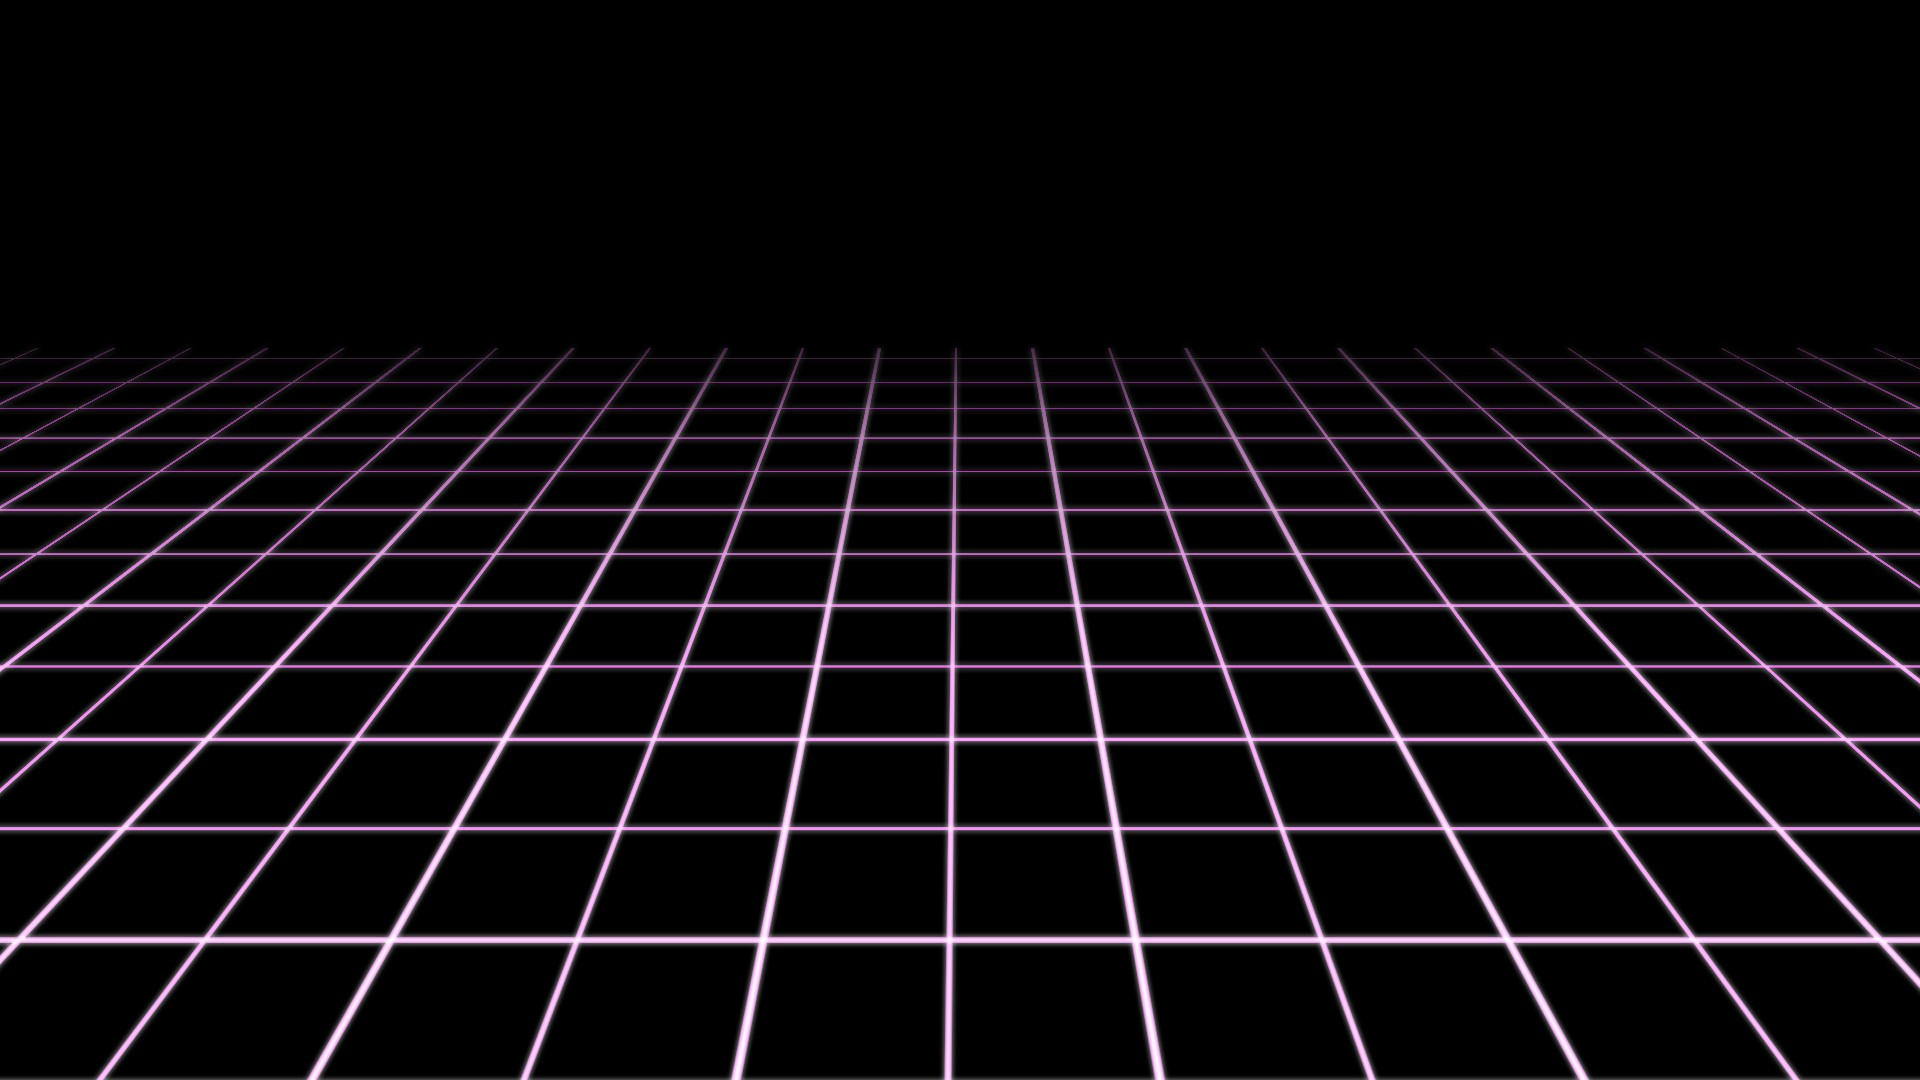 80s background download free amazing full hd - Space 80s wallpaper ...